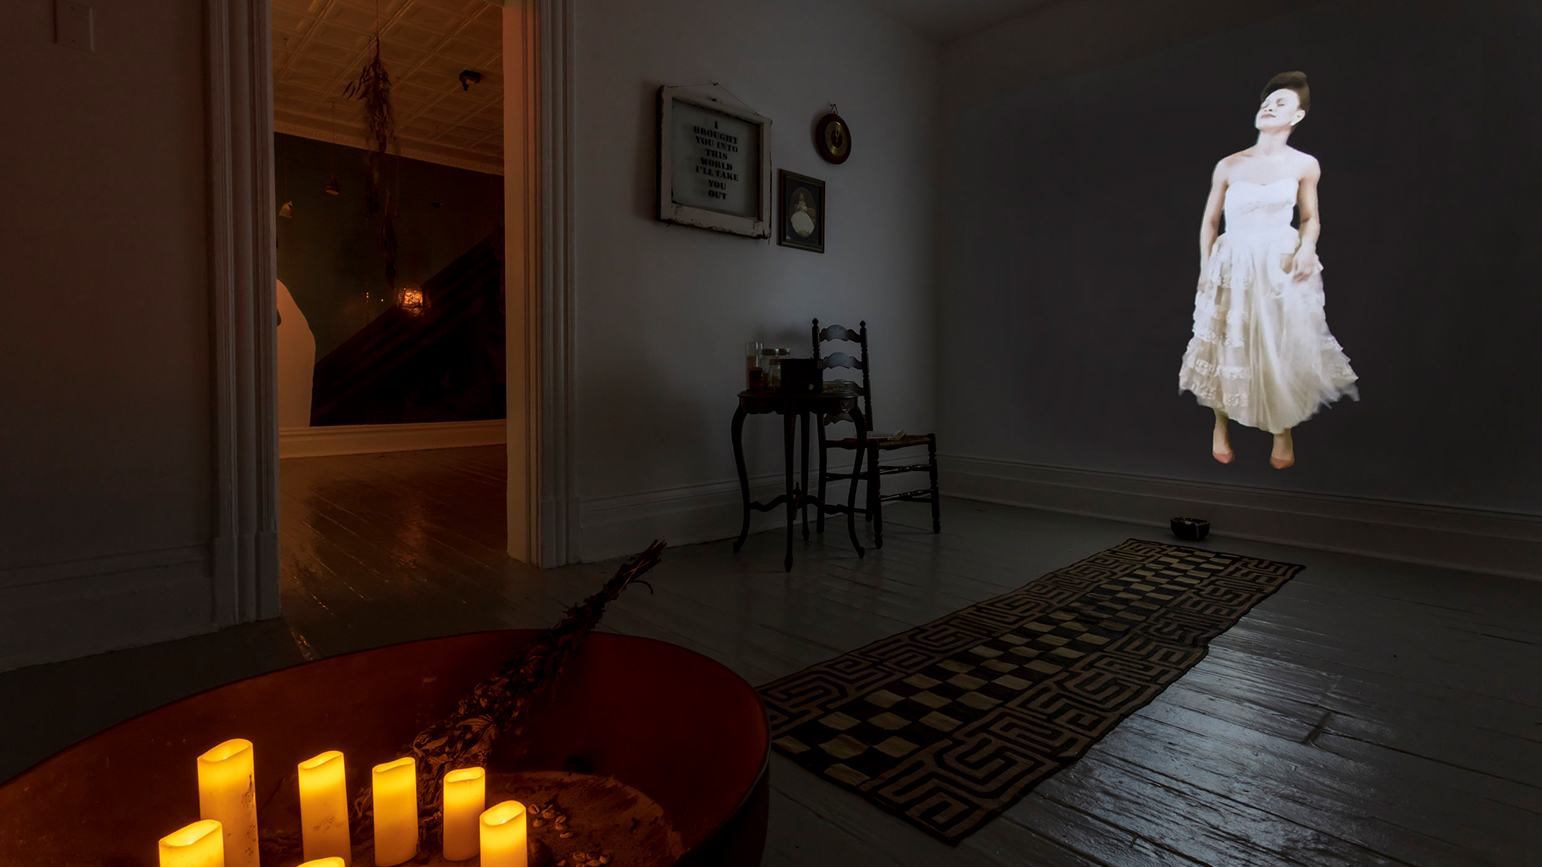 Image of an installation by Alisha Wormsley showing a projection of a woman, candles, and other domestic items